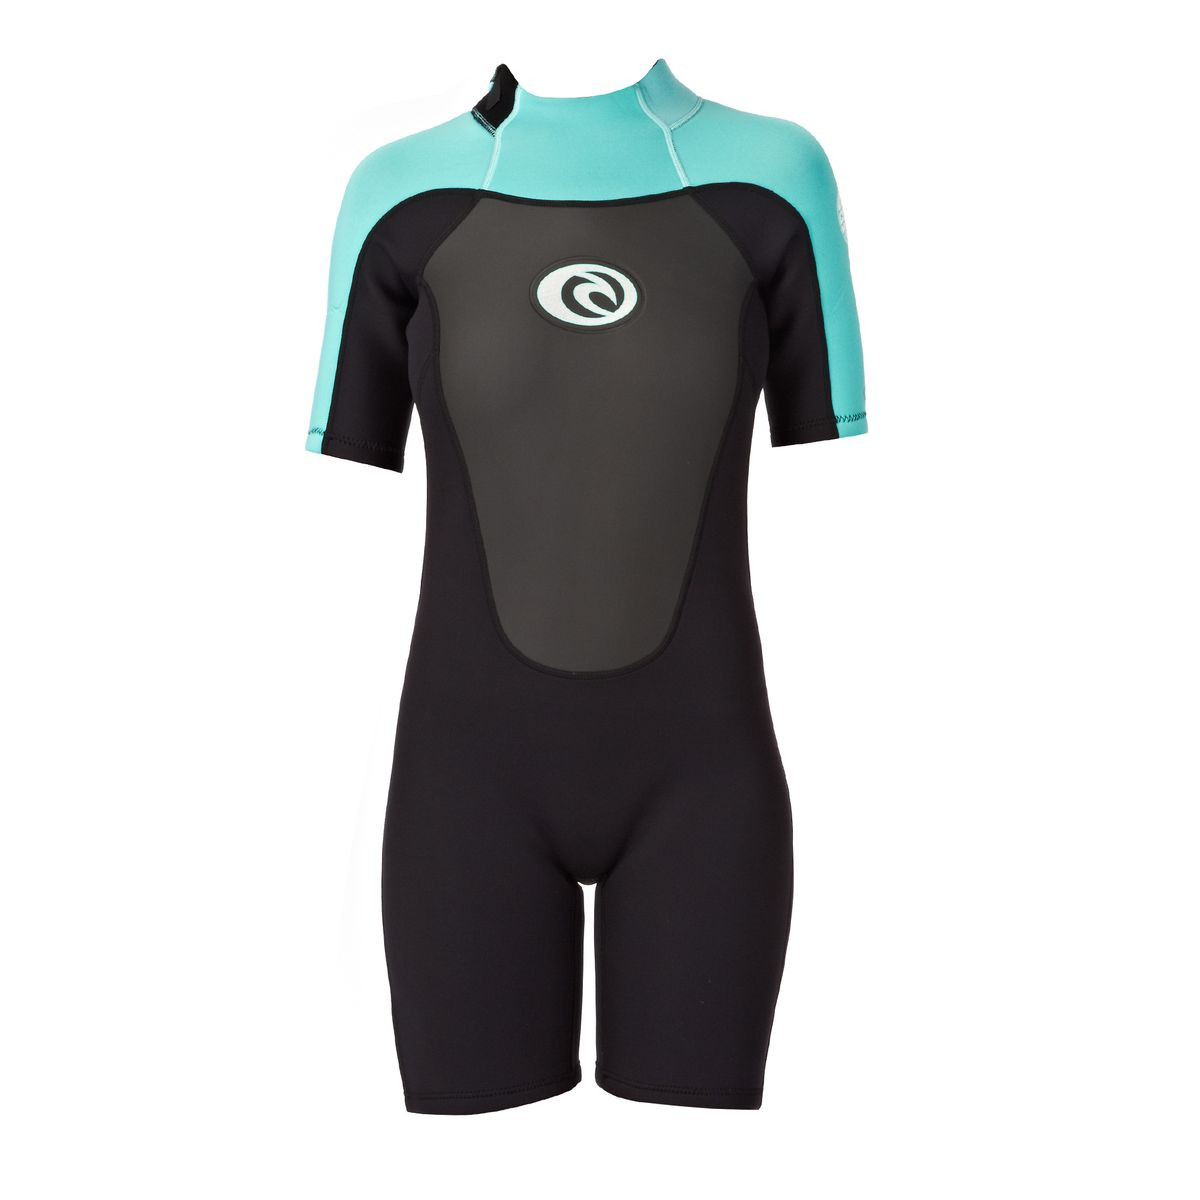 Rip Curl Women's Omega 2mm Back Zip Shorty Wetsuit - Turquoise